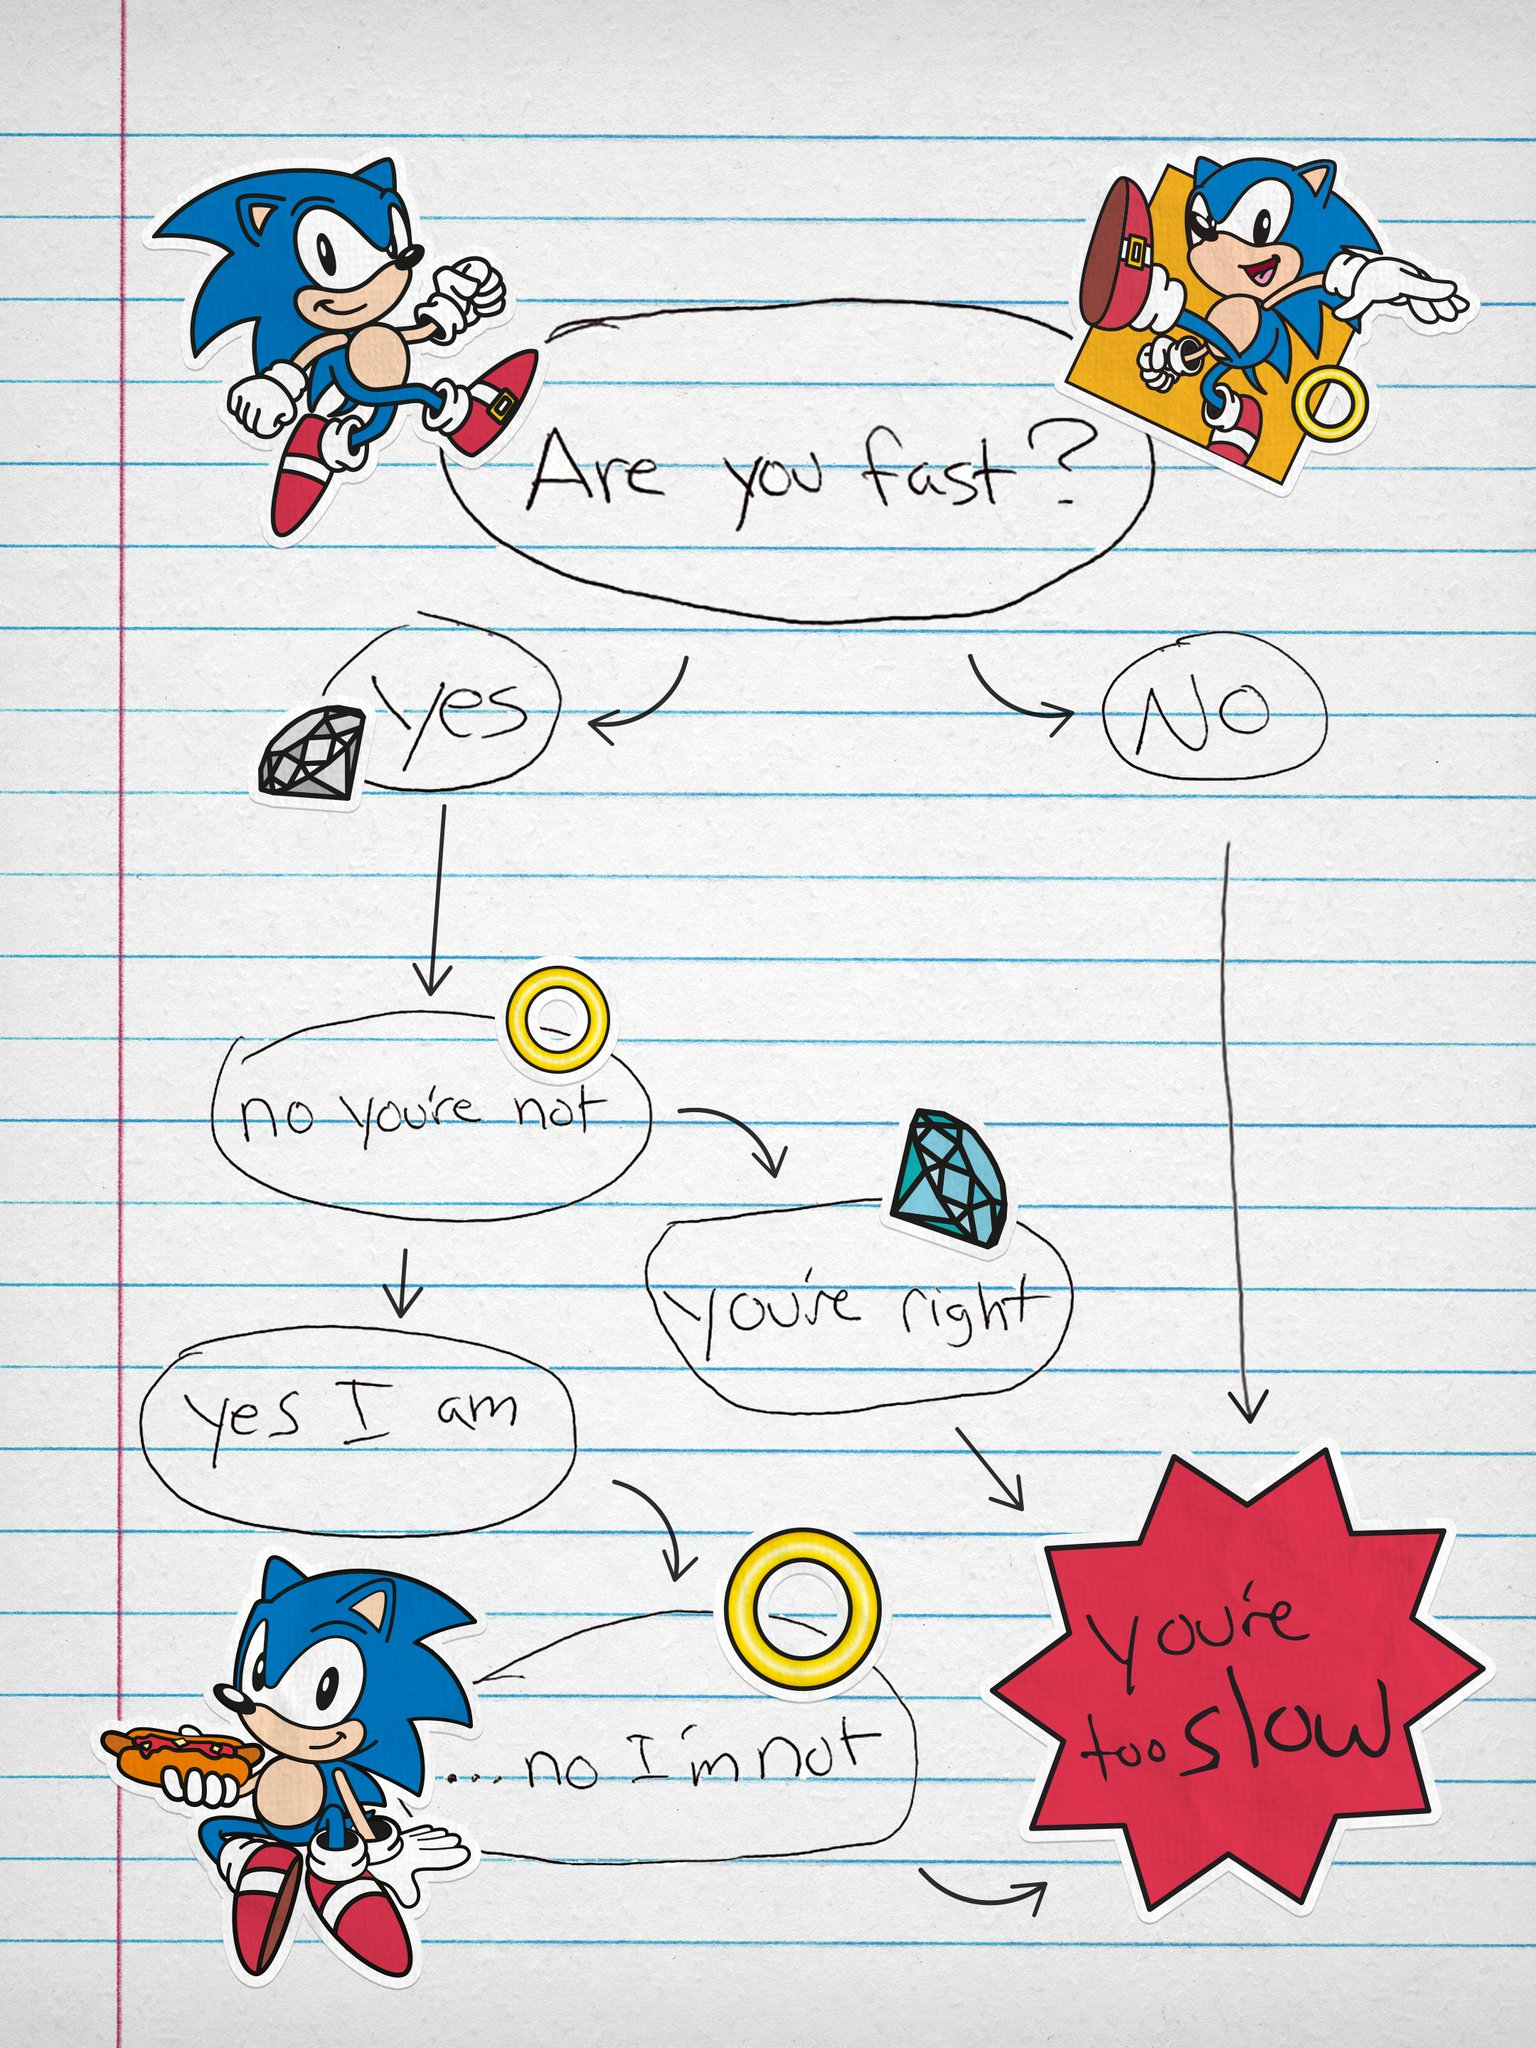 Sonic the Hedgehog's Flowchart